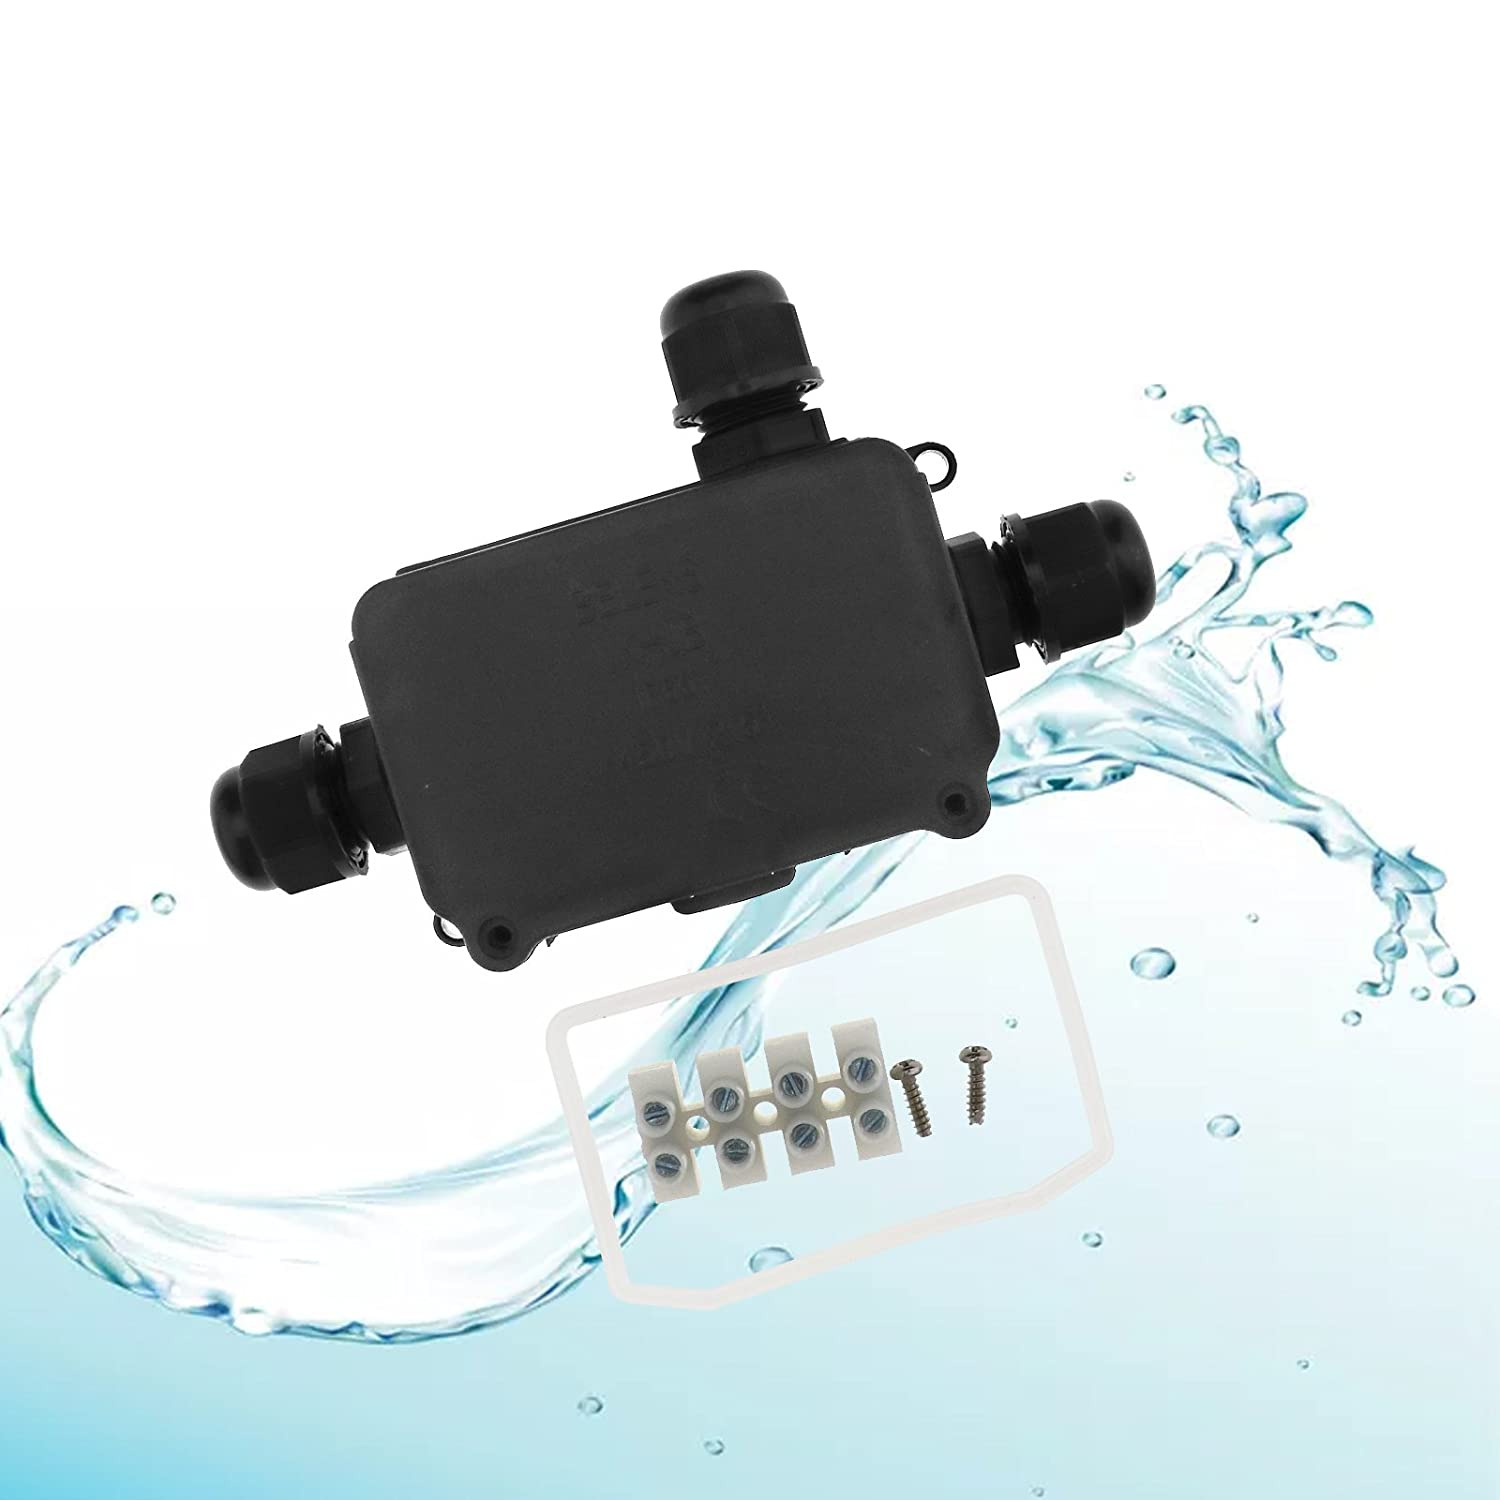 SING F LTD 3 Way IP66 Junction Box Waterproof Case Electrical Cable Wire Connector with CE